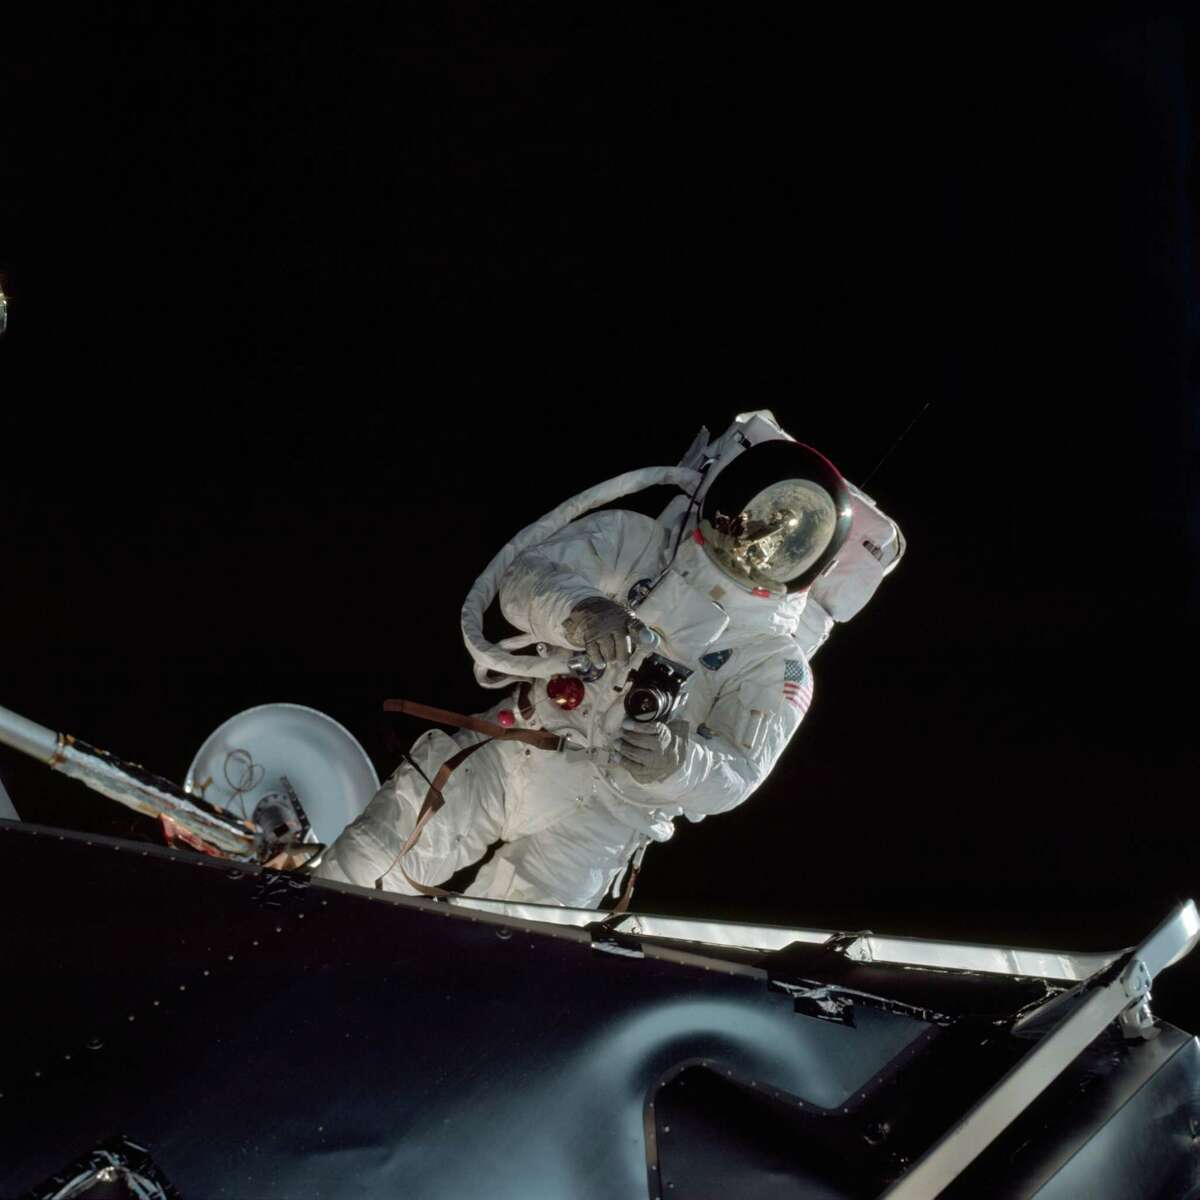 Astronaut Russell L. Schweickart operates a 70mm Hasselblad camera during his extravehicular activity on the fourth day of the Apollo 9 mission. The Command/Service Module and the Lunar Module 3